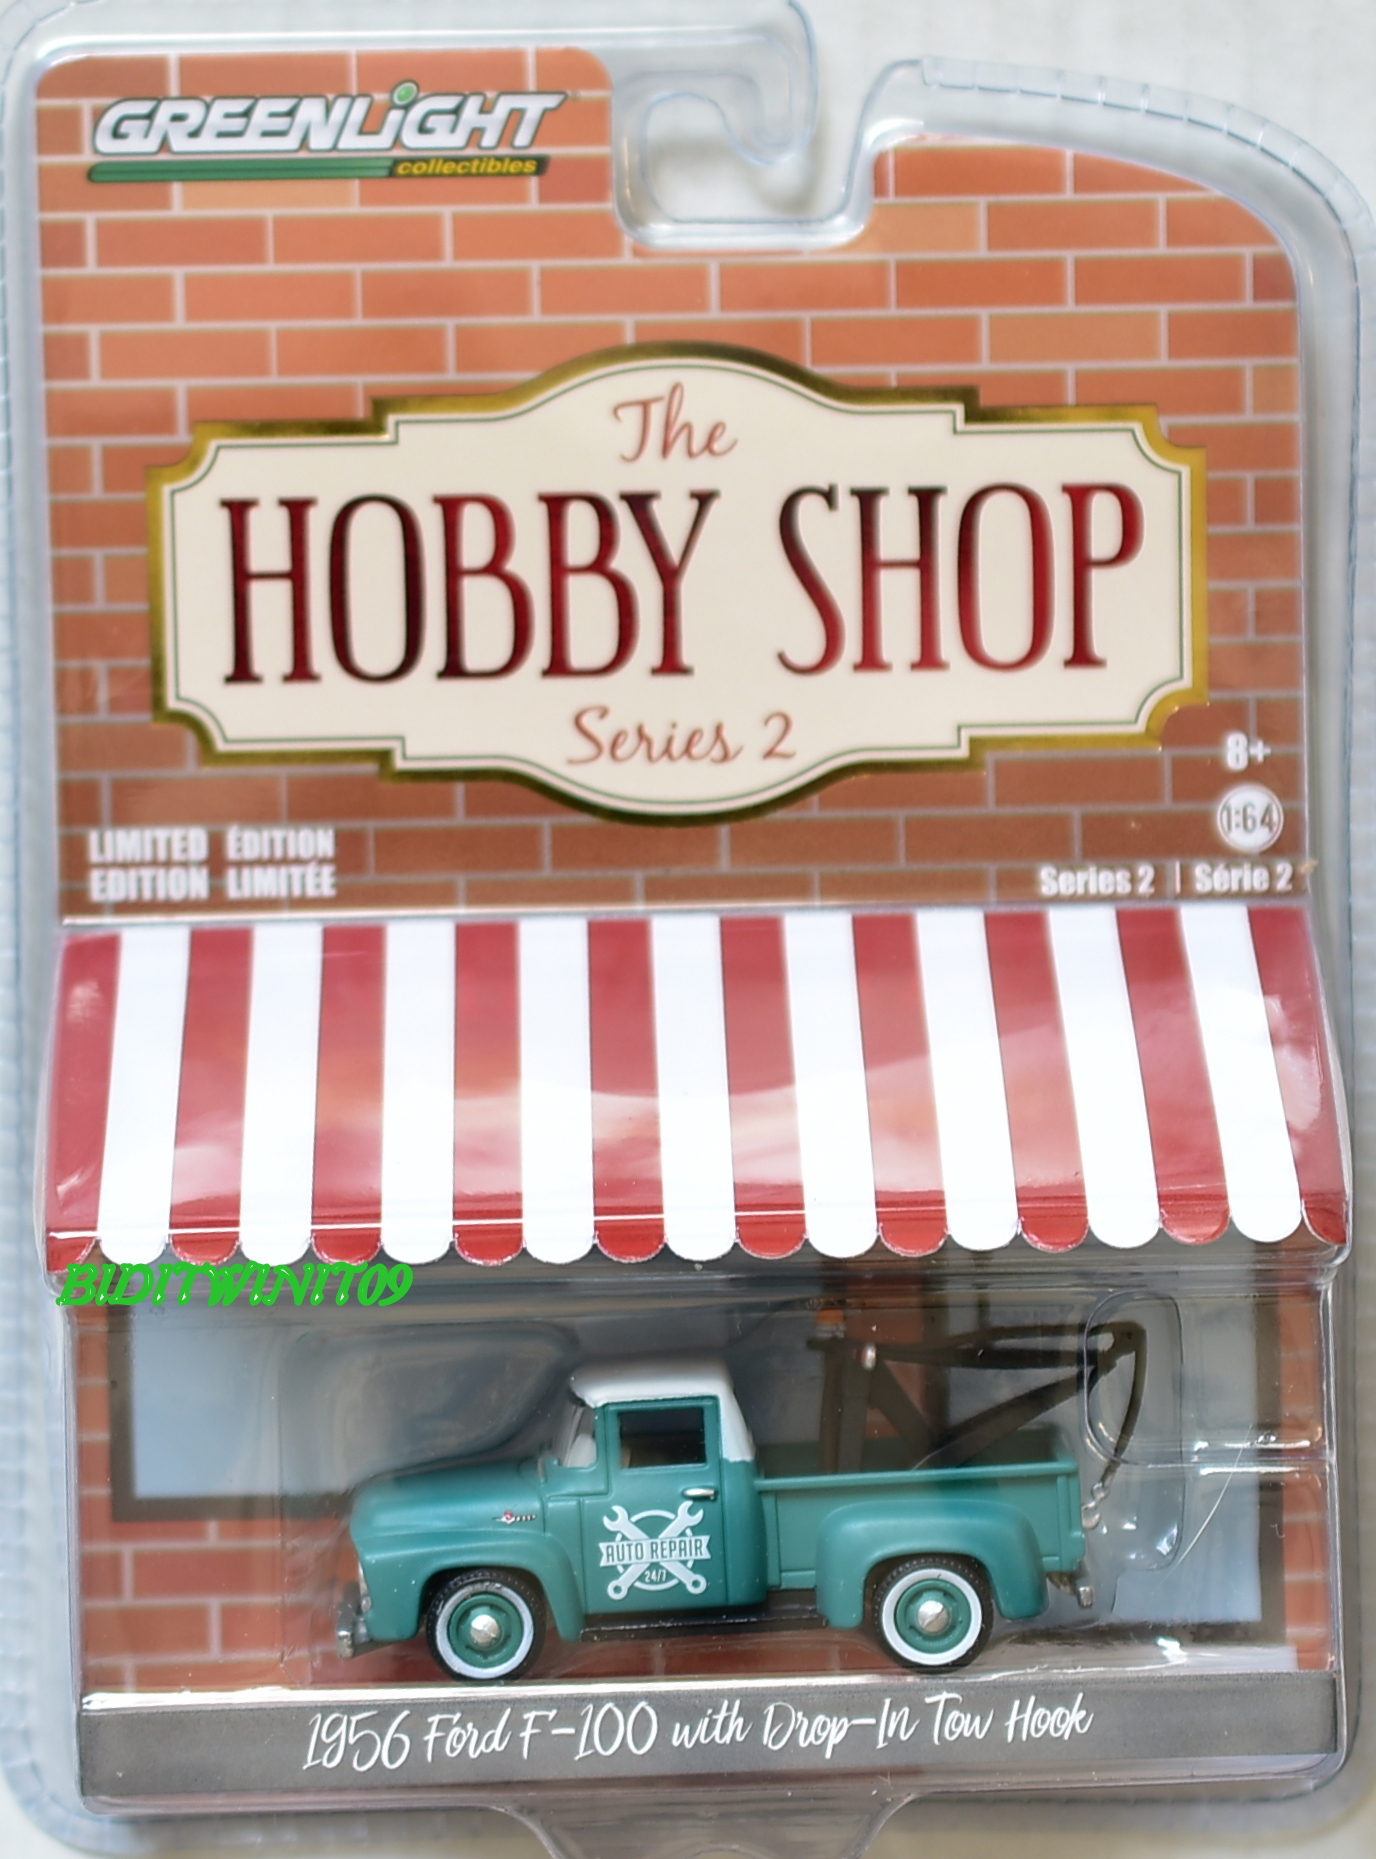 GREENLIGHT HOBBY SHOP SERIES 2 1956 FORD F-100 WITH DROP-IN TOW HOOK